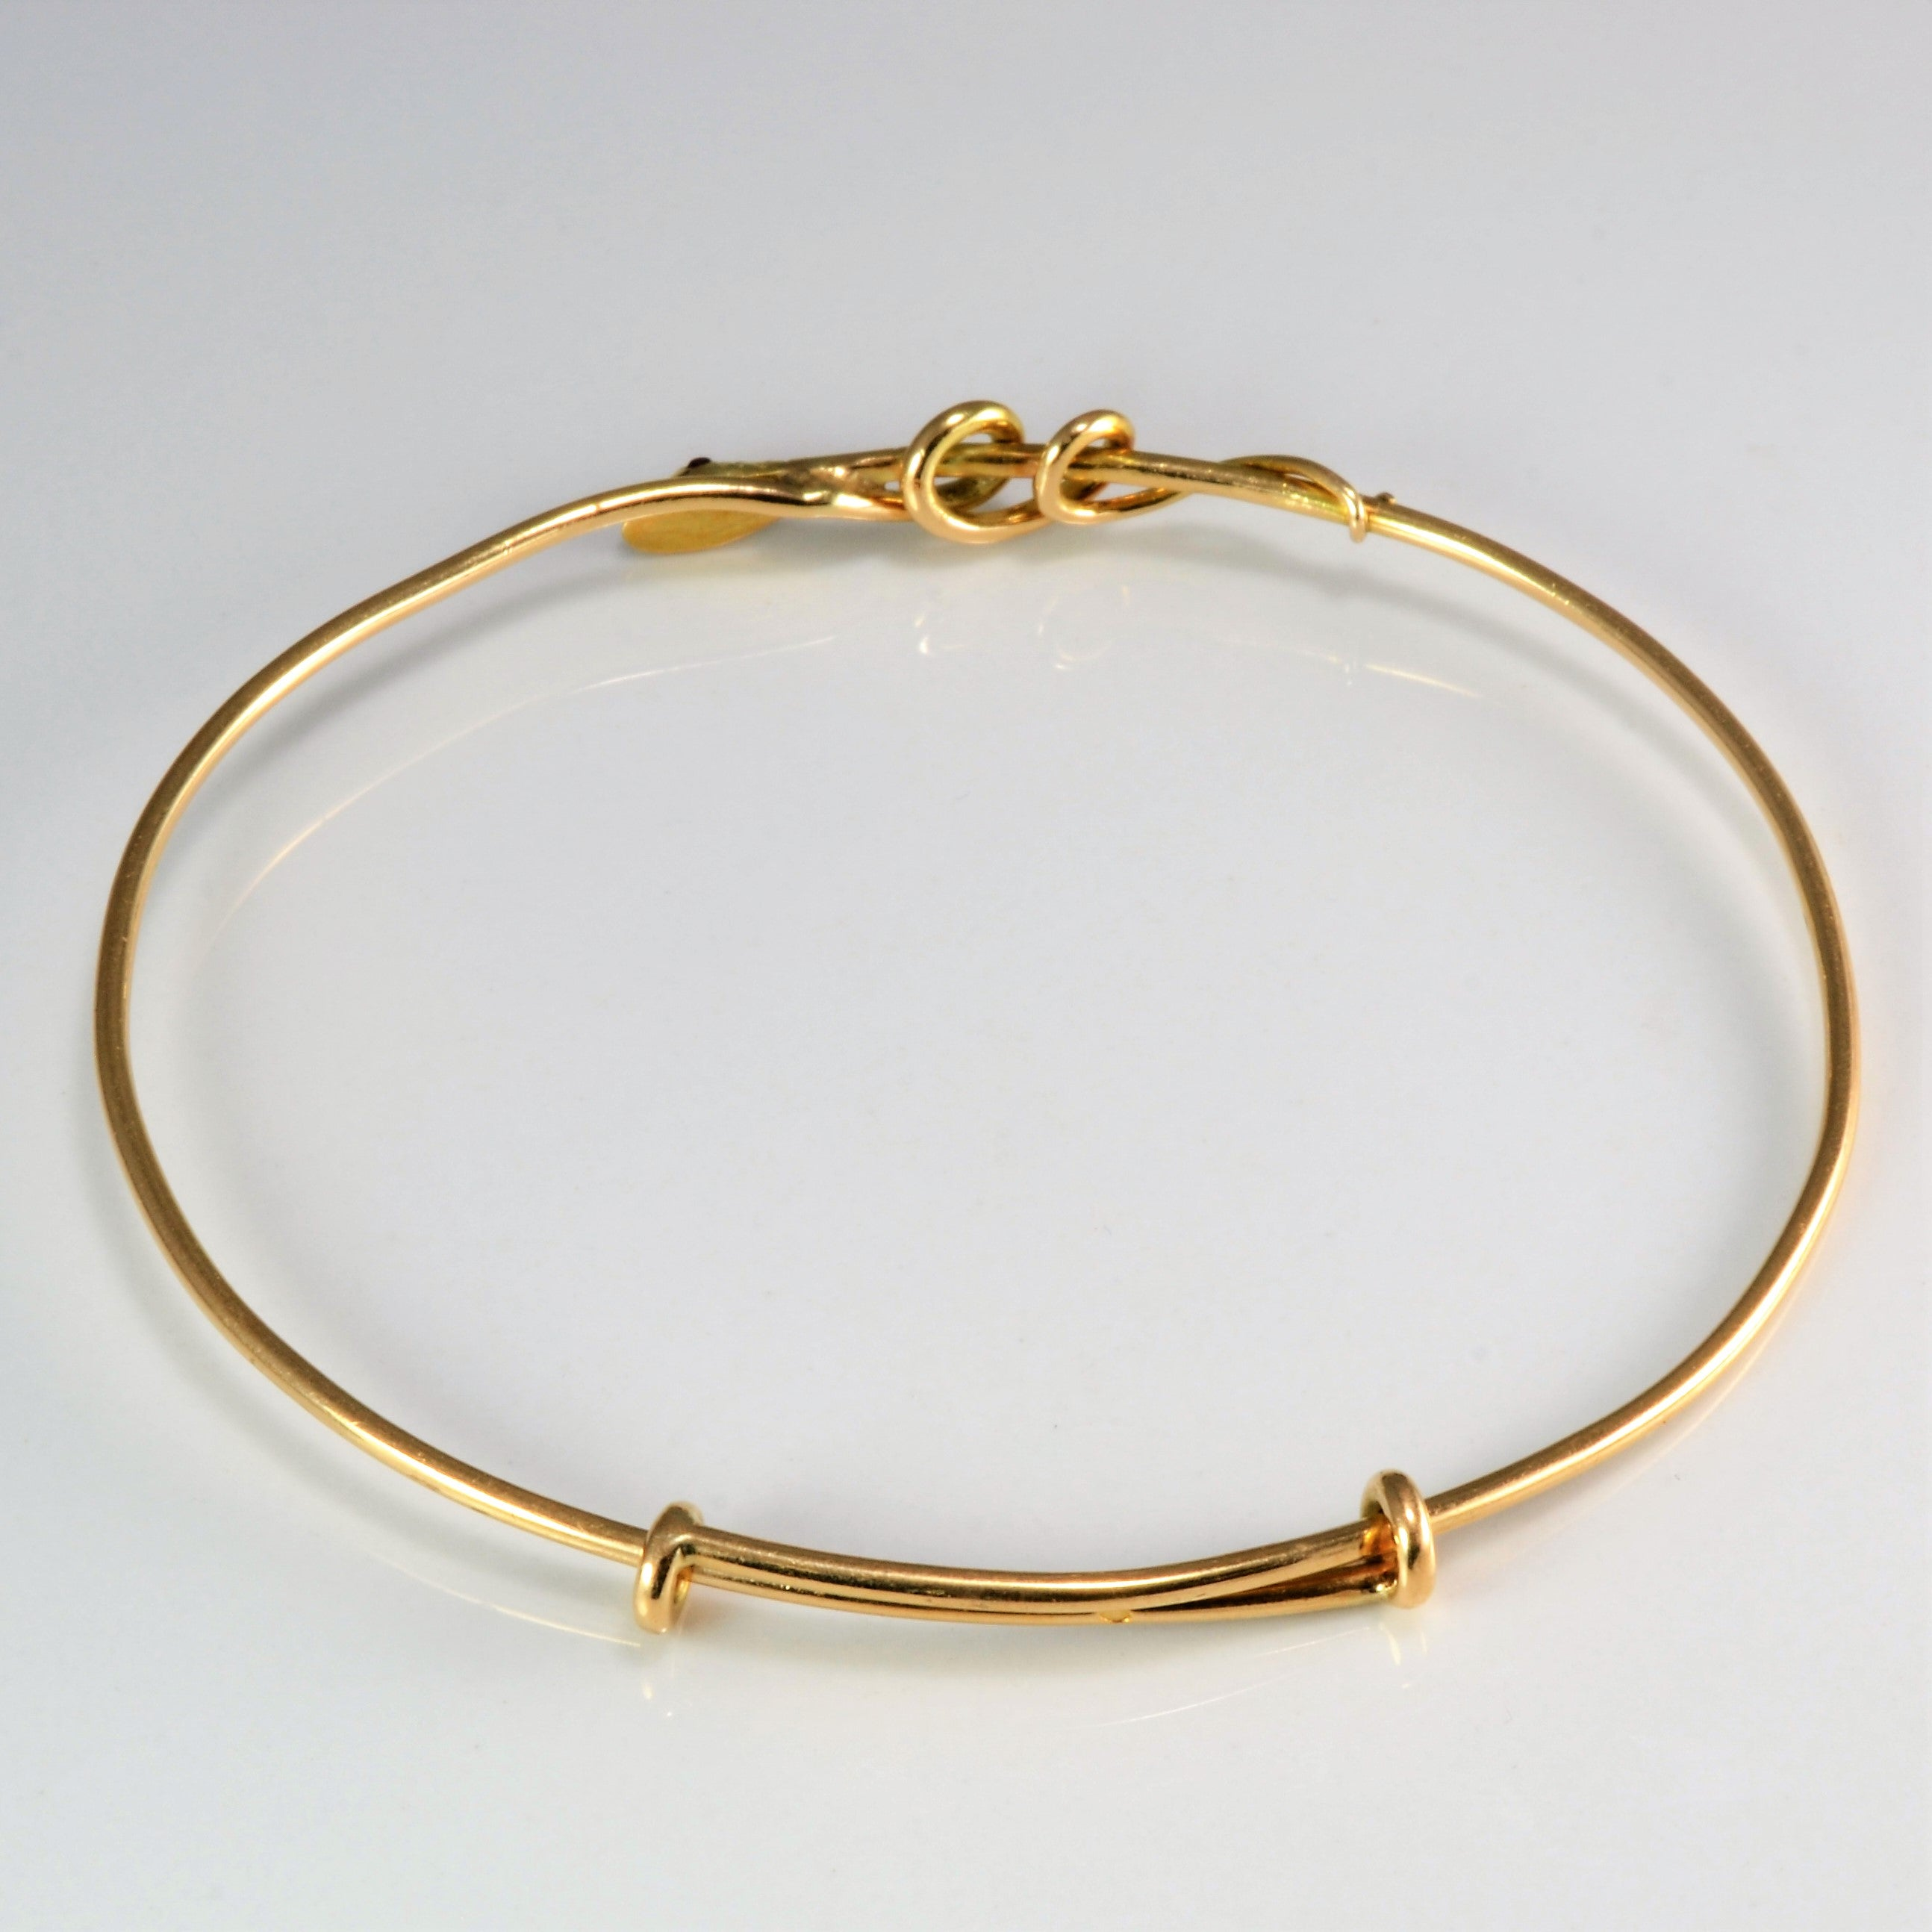 the bangles fashion gold bracelet cartier best news kate love spade of jewellery watches bracelets bangle design cuffs uk